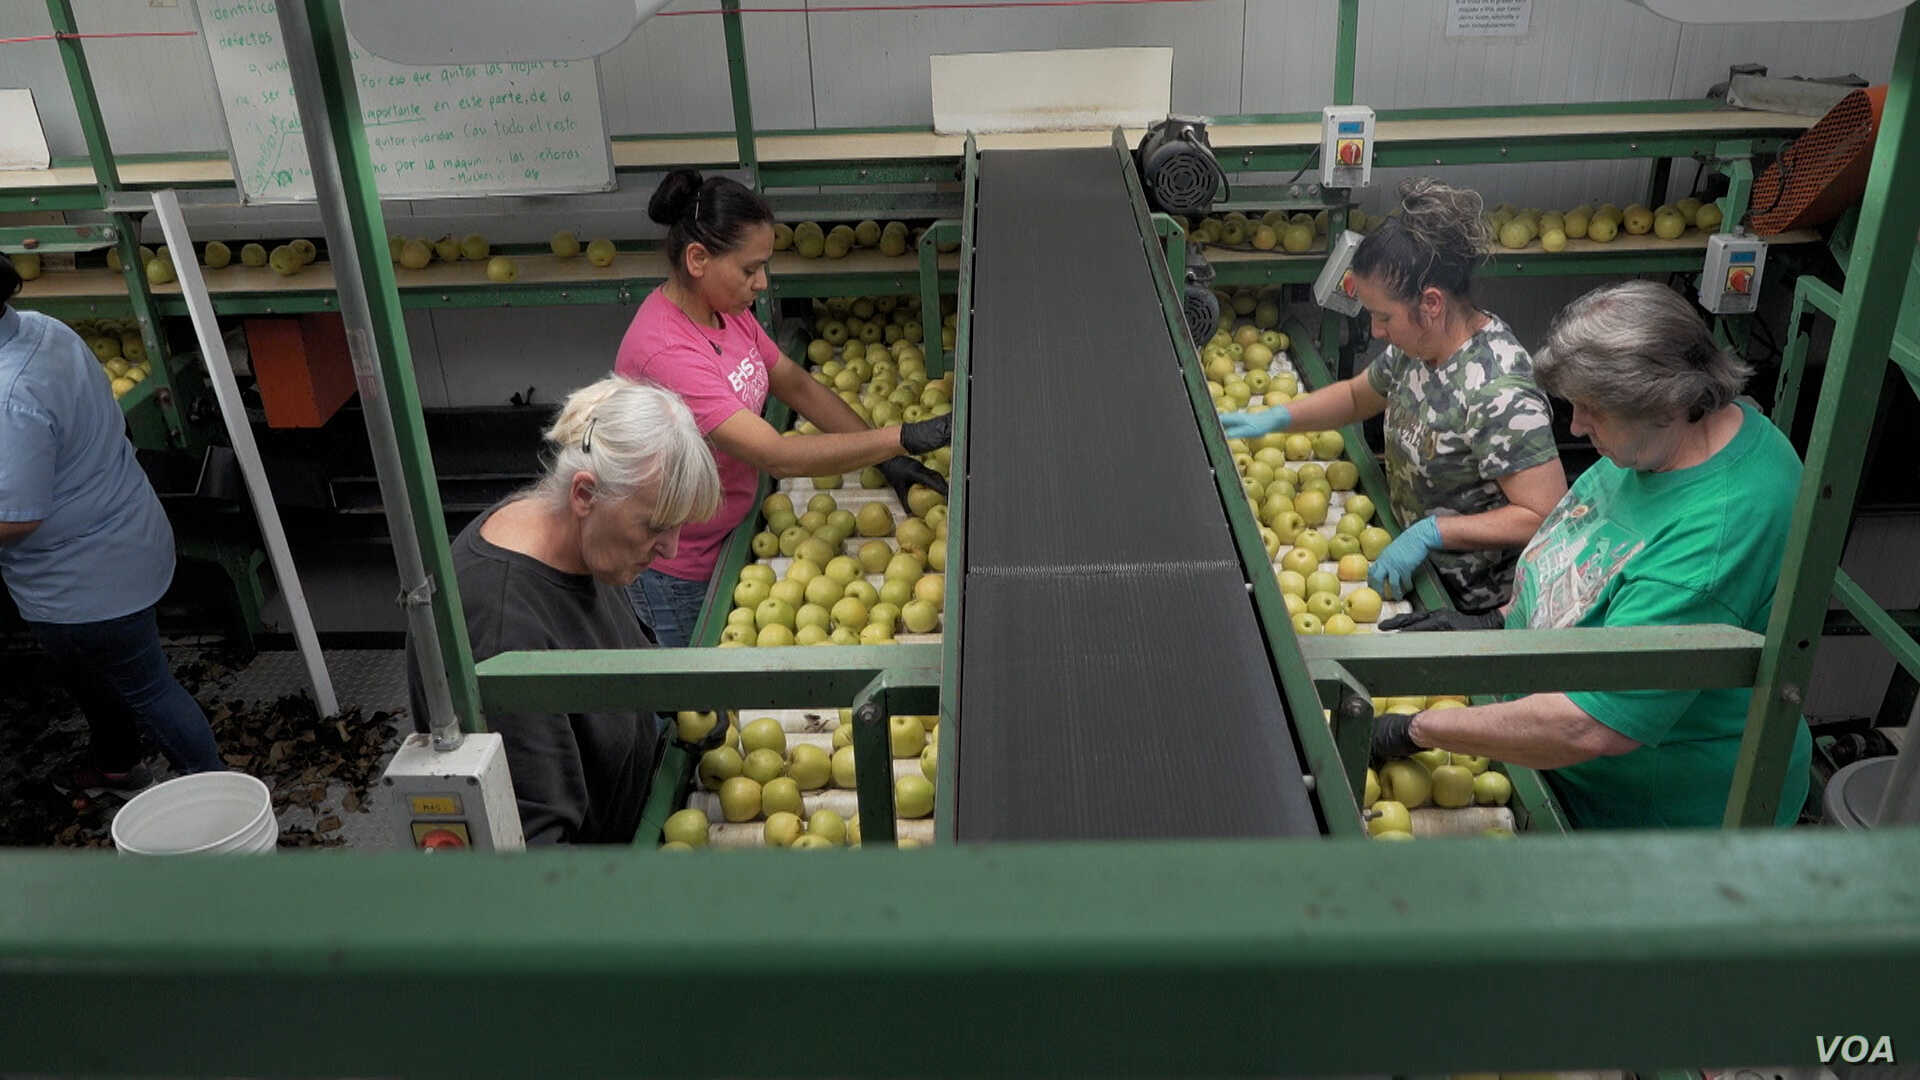 Workers, many of them immigrants, sort apples at the Rice Fruit Company, the largest  apple-packing facility in the Eastern U.S. (M. Kornely/VOA)